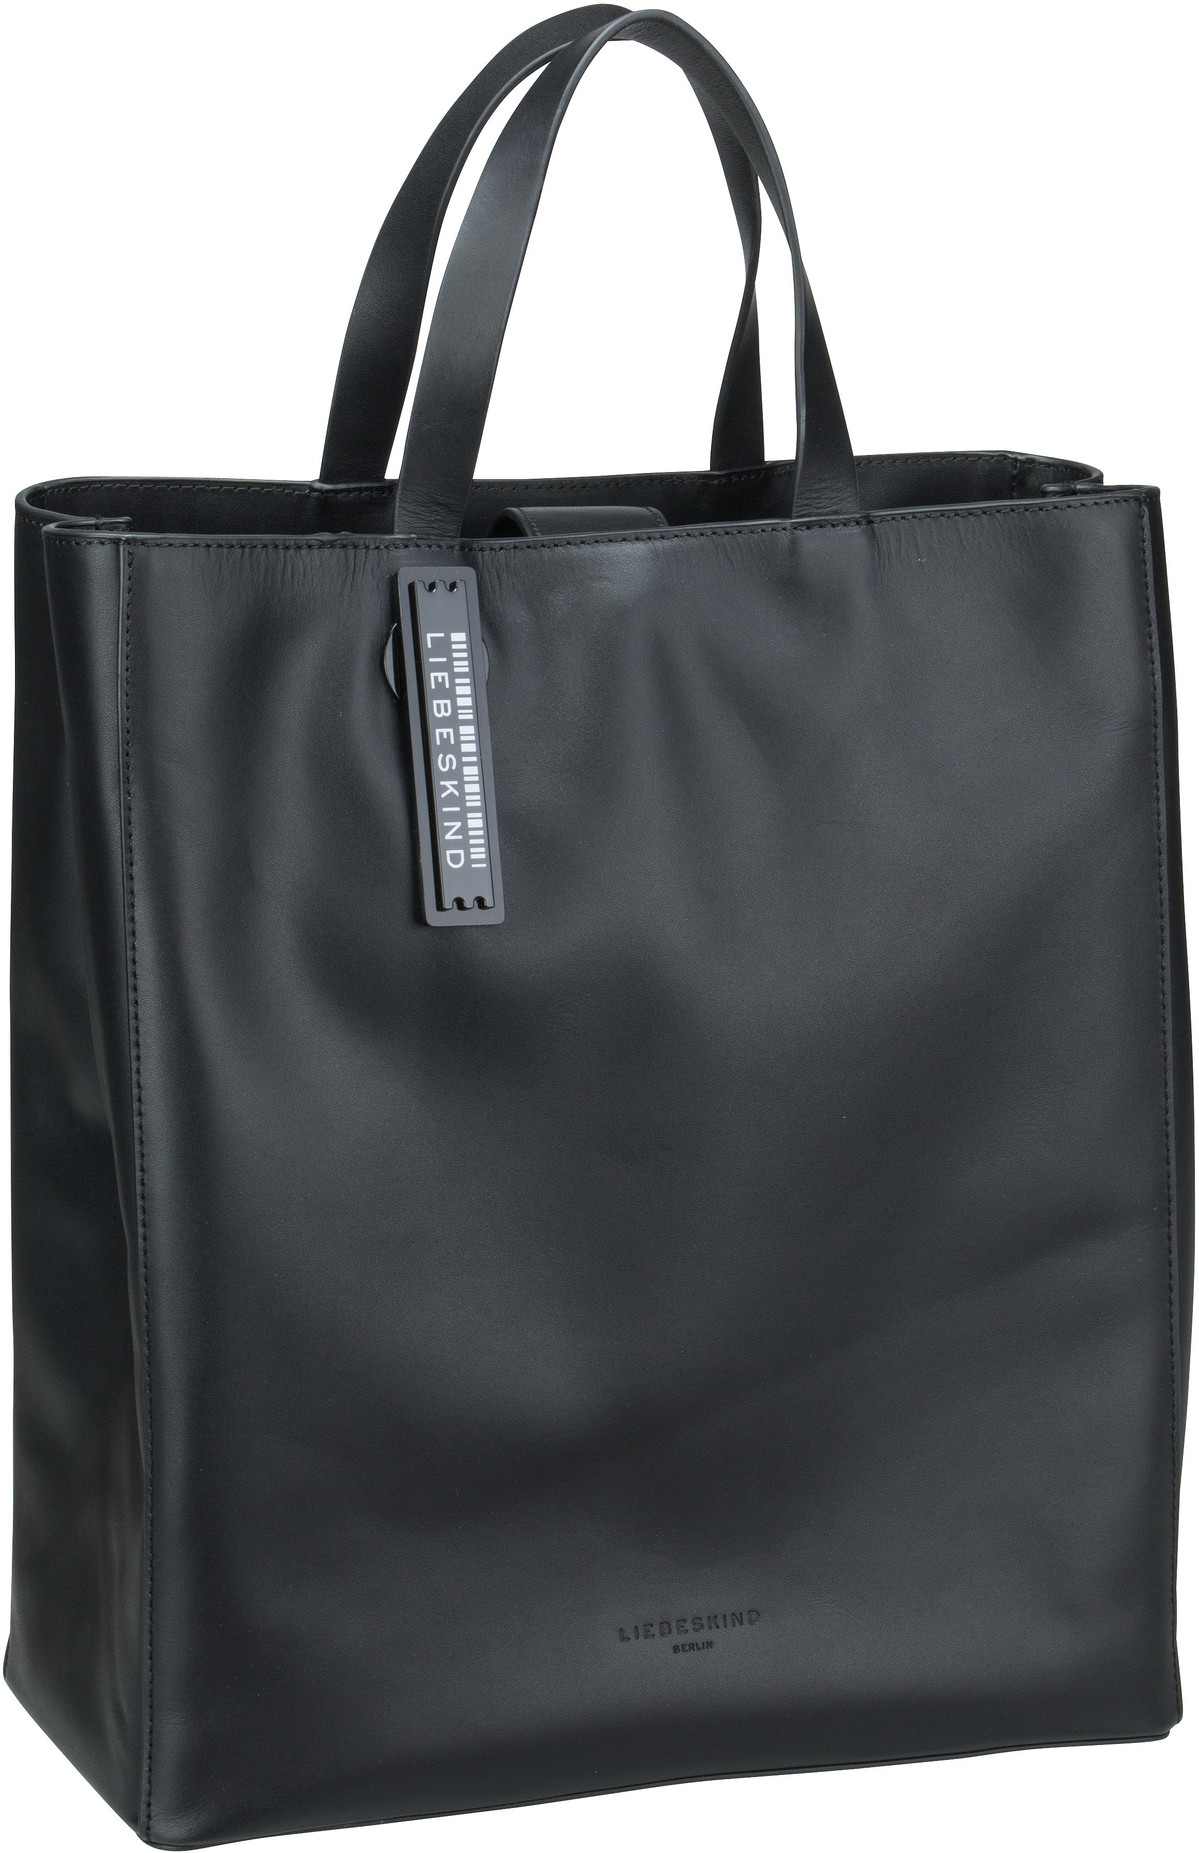 Berlin Shopper Paper Bag 20 Black